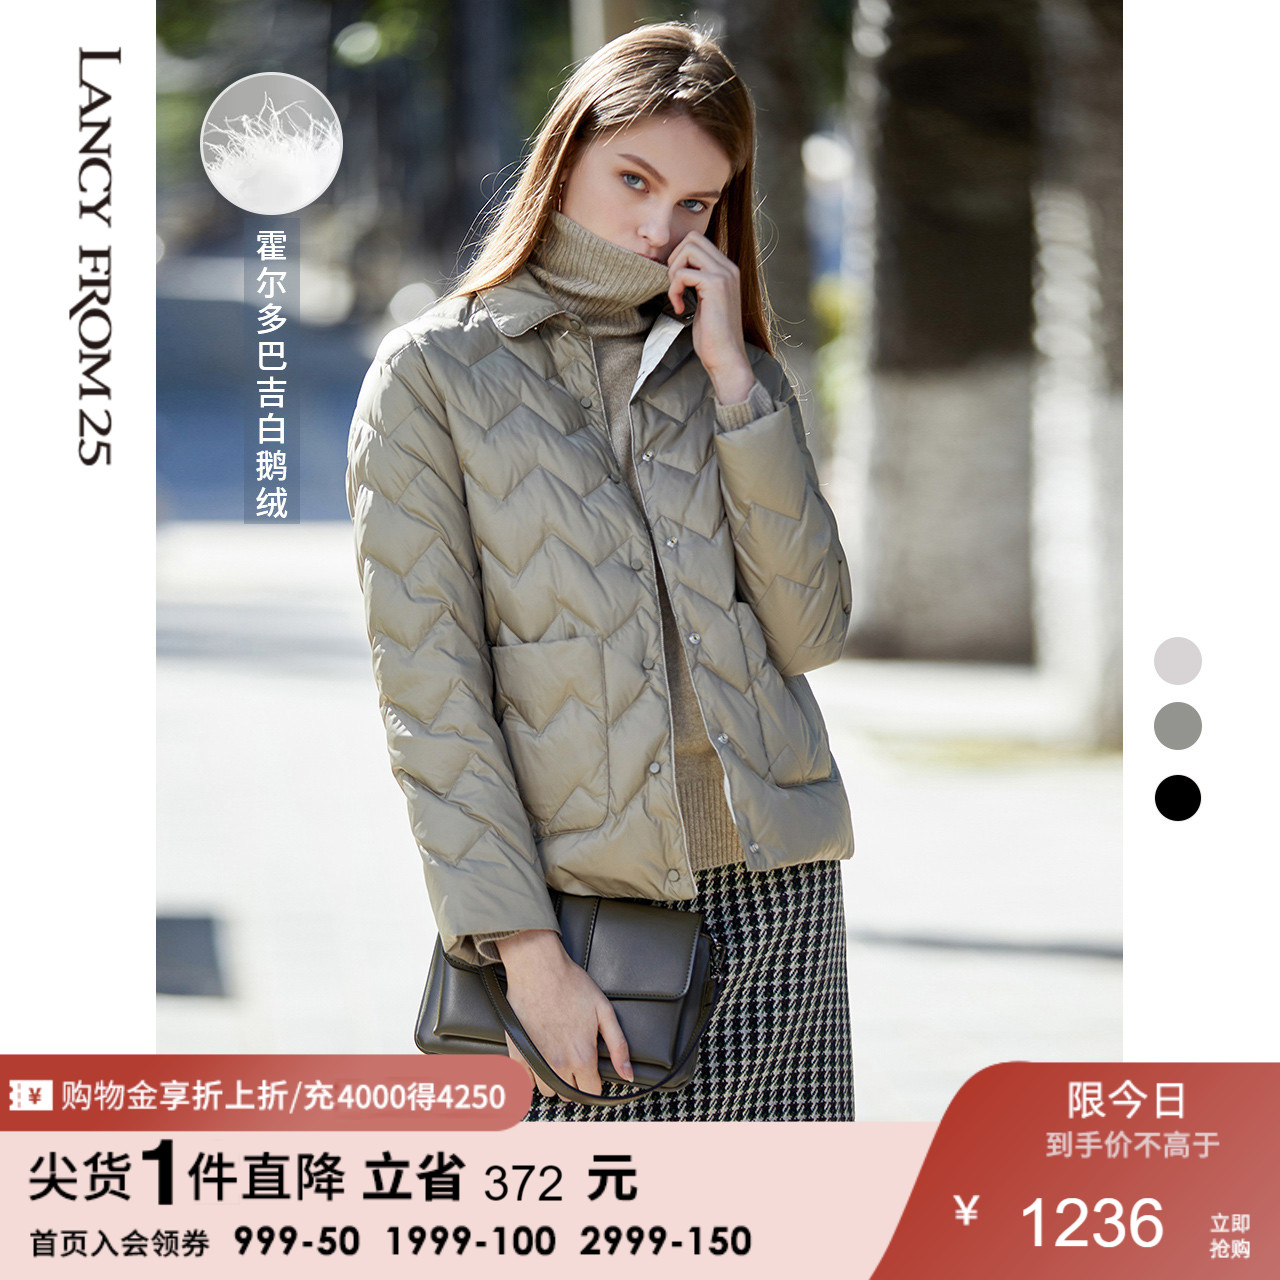 Langzi Lightweight White Goose Down Down Jacket Women's Winter 2020 New Slim Short Style Hoodless Jacket